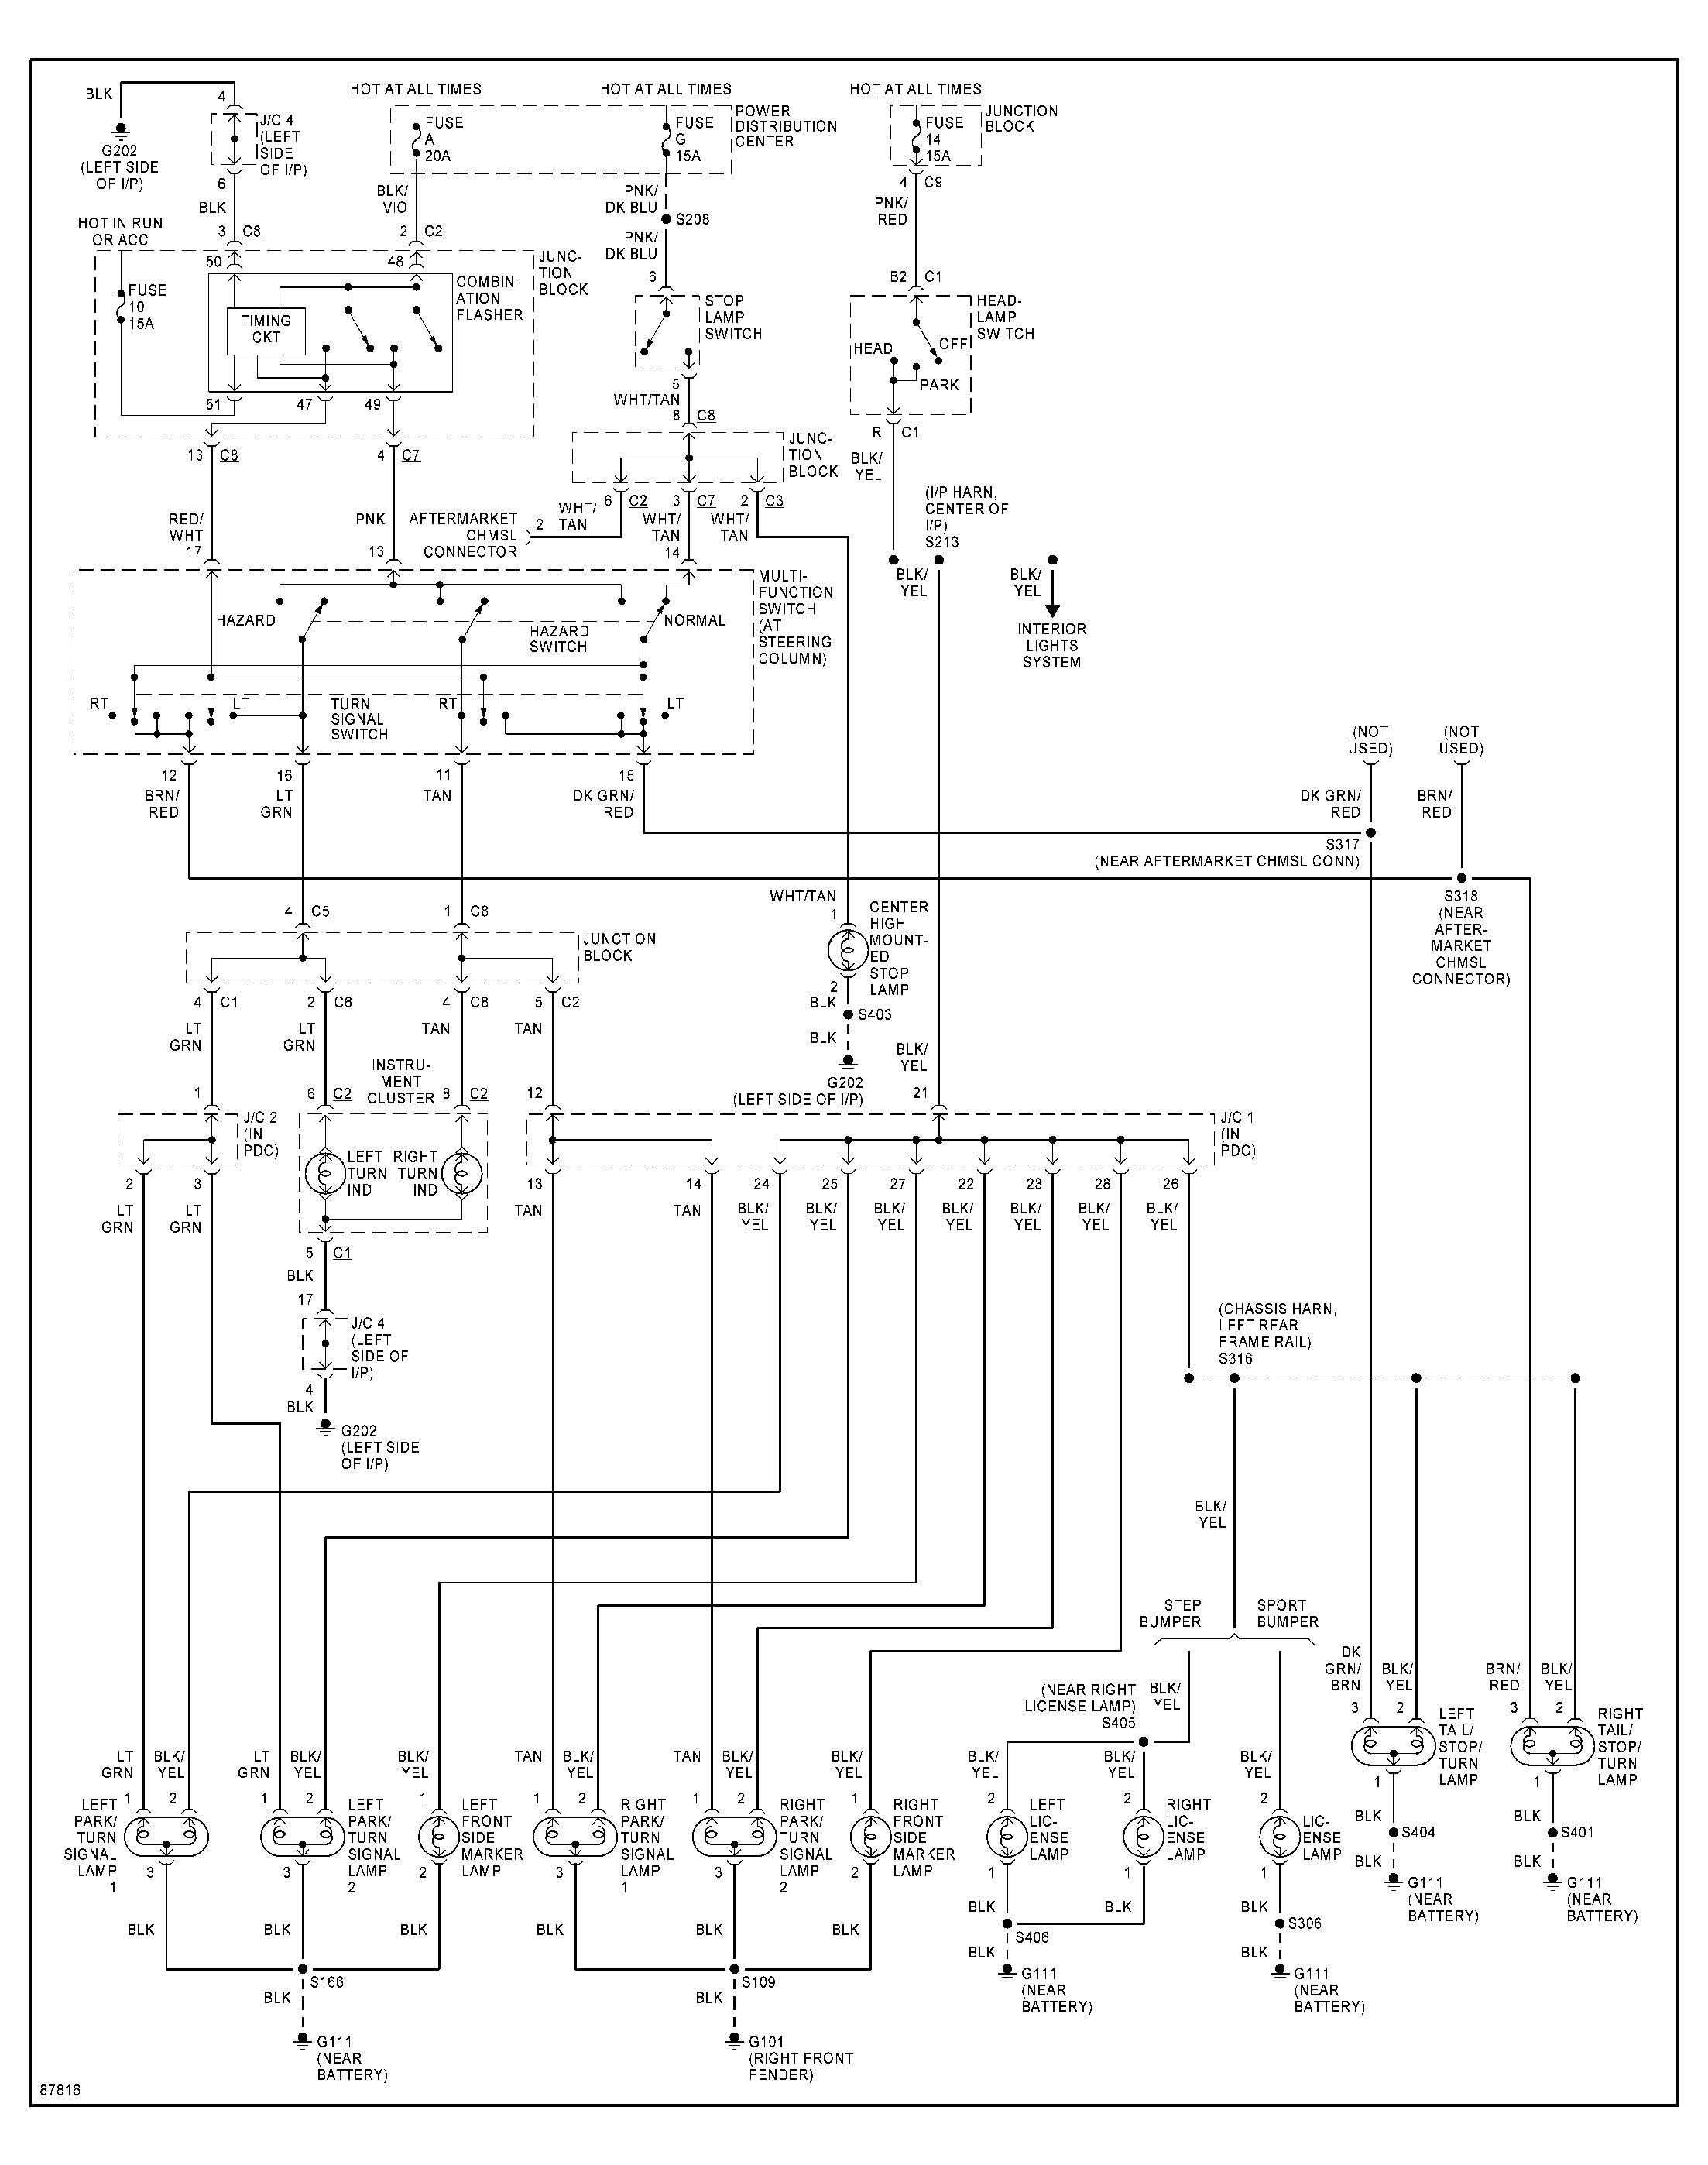 Infiniti Qx4 Engine Diagram 2002 Dodge Durango Engine Diagram Worksheet and Wiring Diagram • Of Infiniti Qx4 Engine Diagram 2001 Infiniti Qx4 Headlight Wiring Diagram Experts Wiring Diagram •